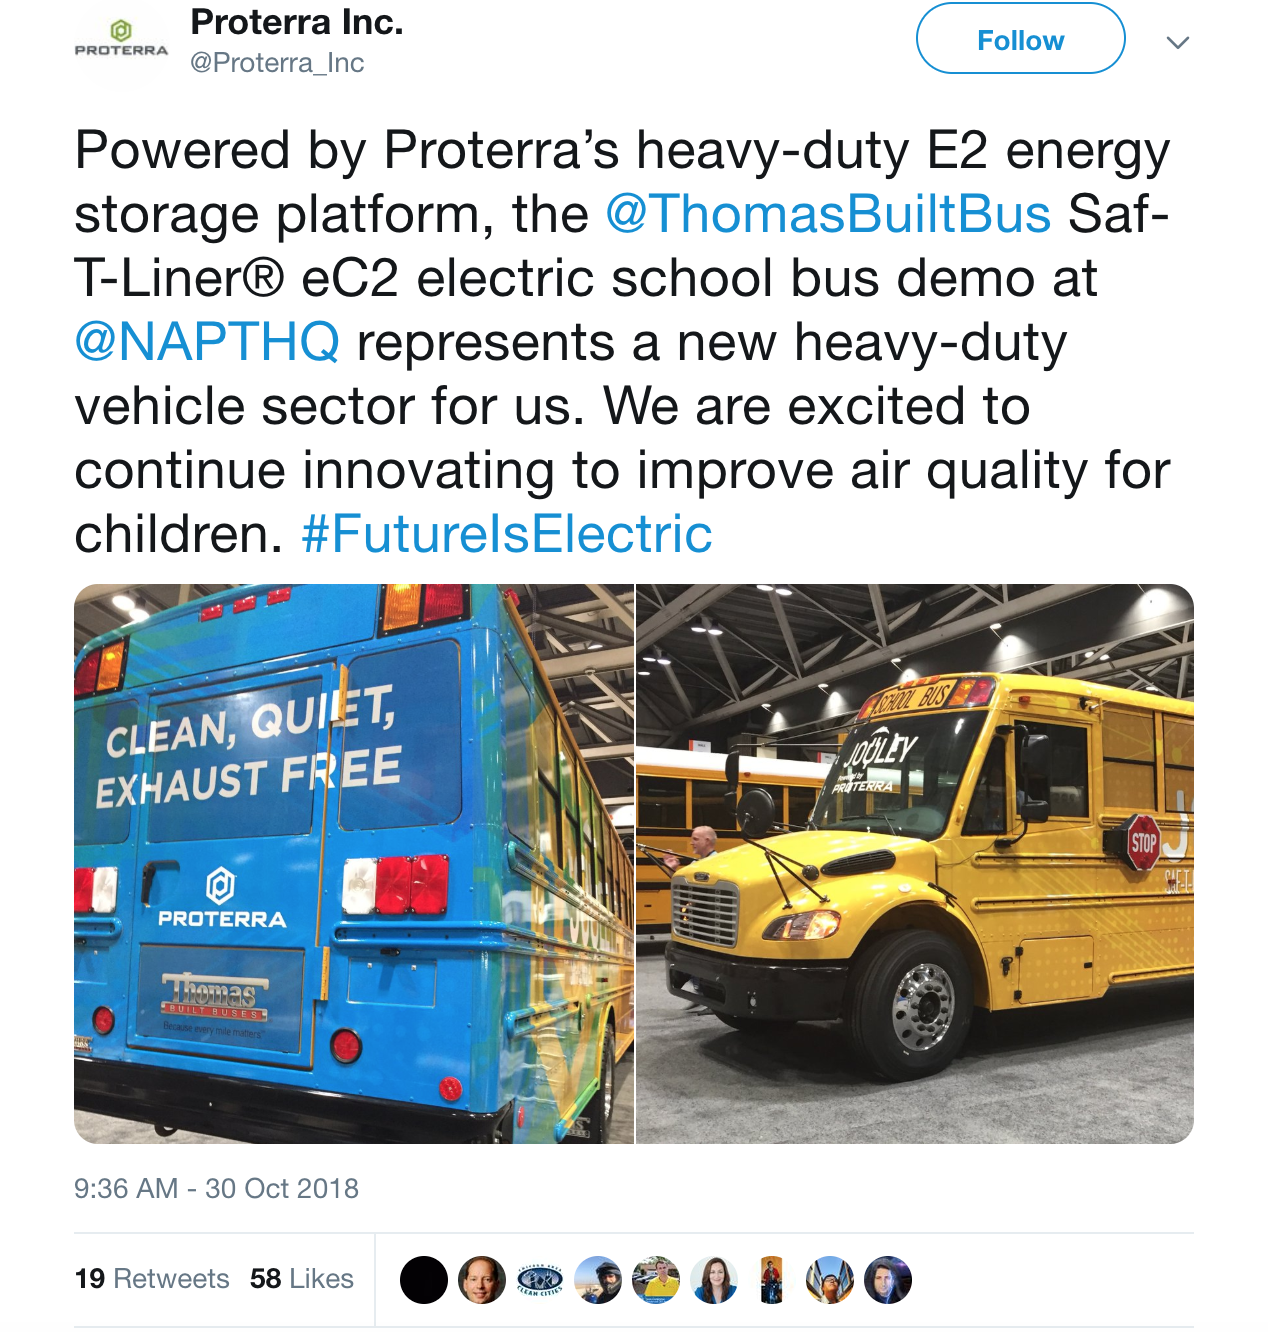 Tweet screenshot from Proterra on new electric school buses